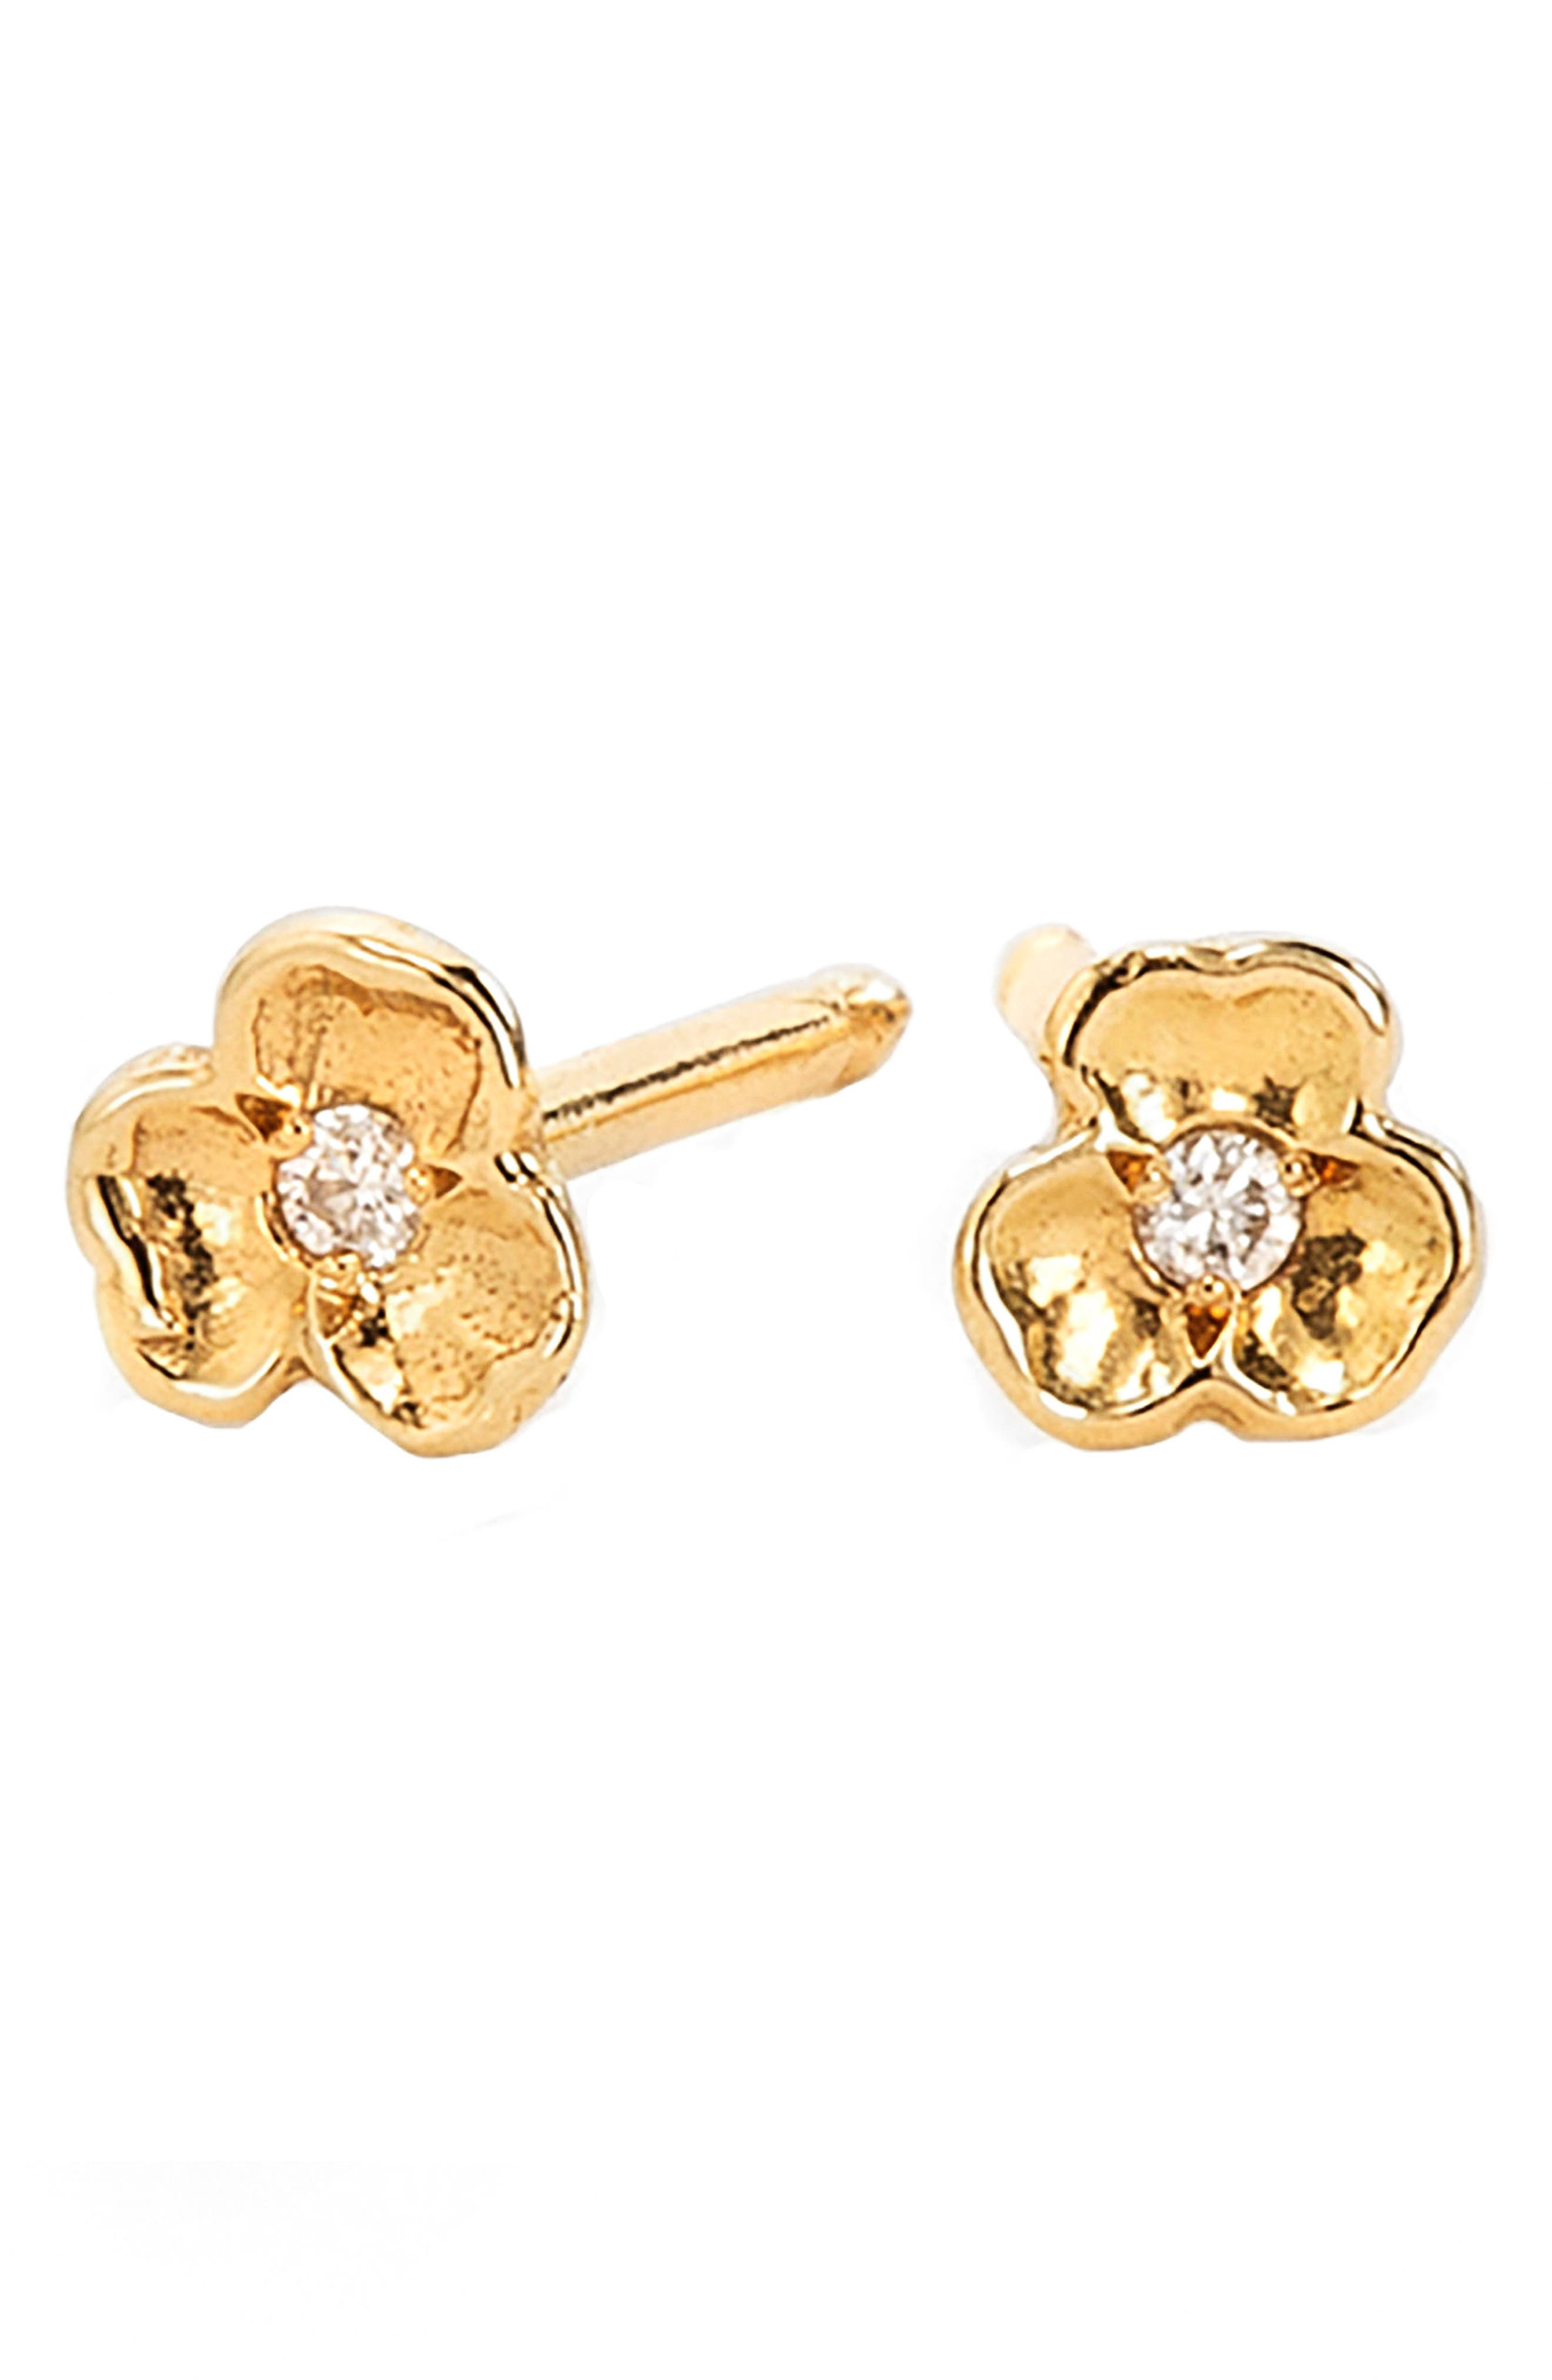 Tiny Diamond Pansy Flower Stud Earrings,                             Main thumbnail 1, color,                             Yellow Gold